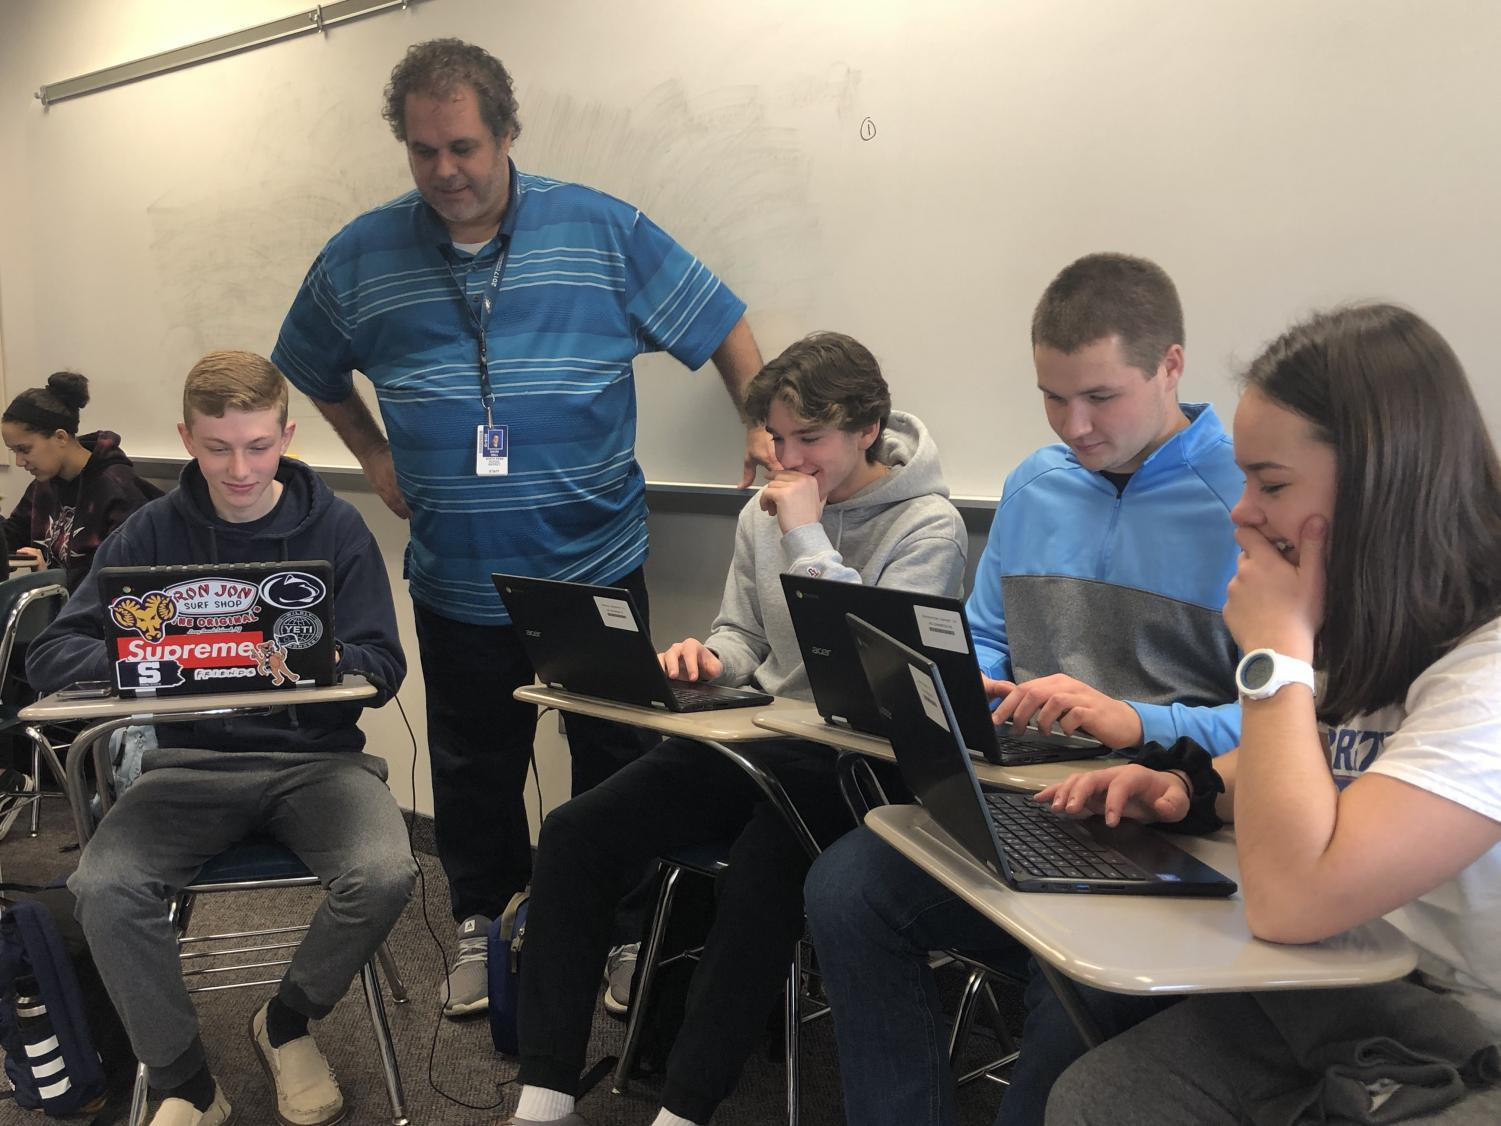 Dr. Dave Hall works with a group of students during a recent class period at NPHS.